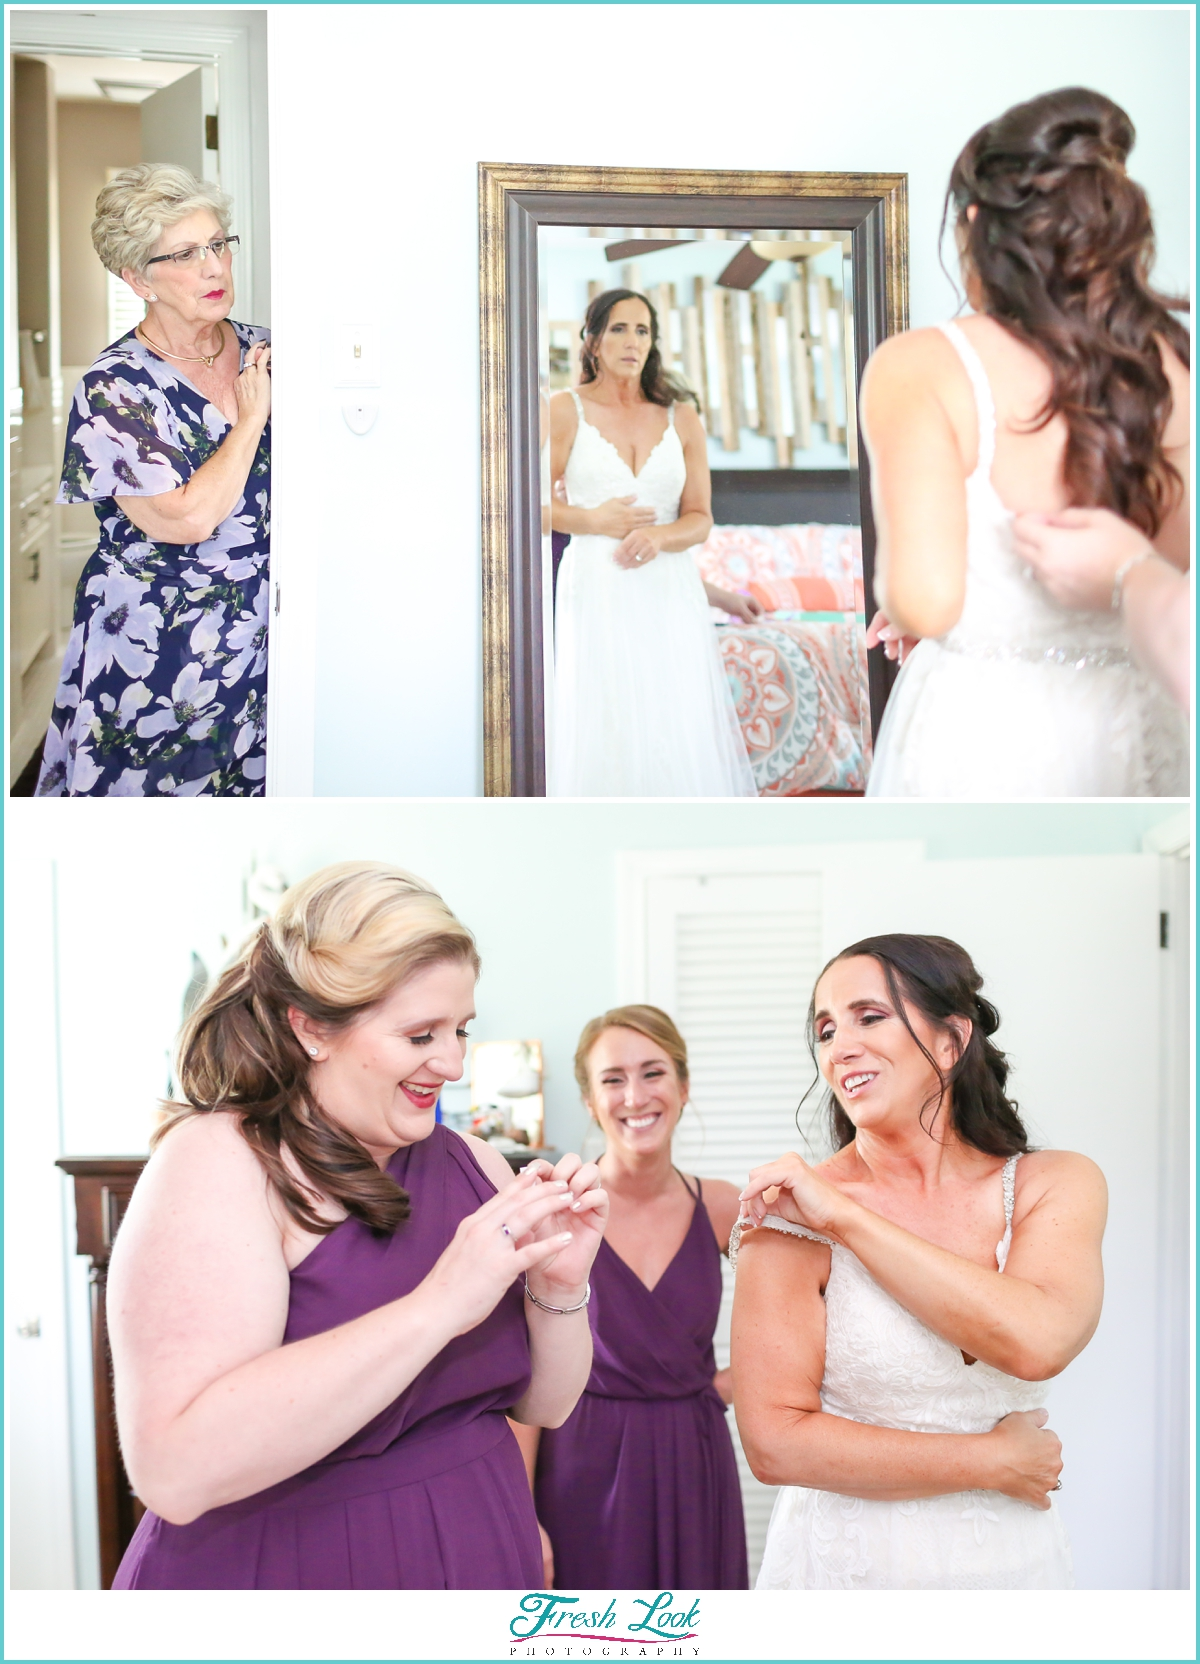 getting ready for the wedding photos